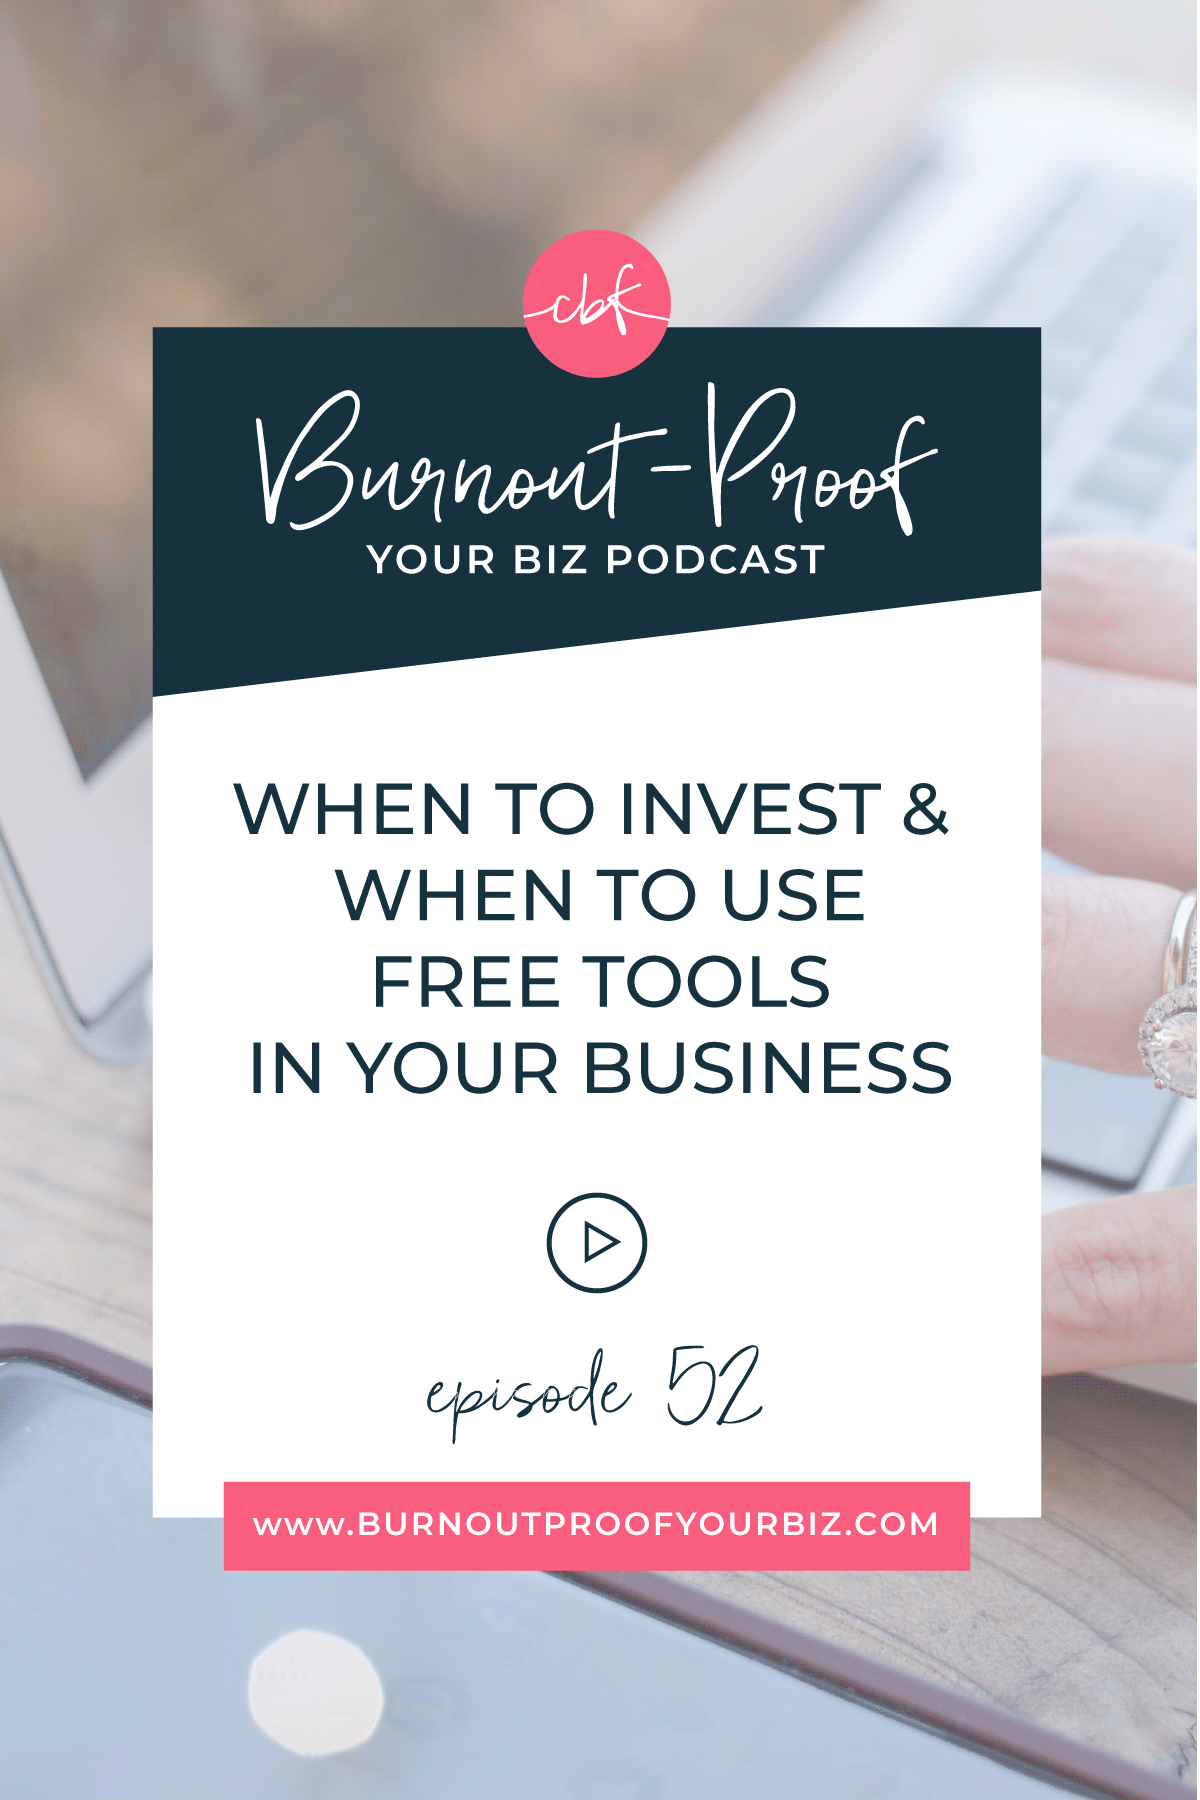 When to Invest In FREE Tools For Your Business | Burnout-Proof Your Biz Podcast with Chelsea B Foster | Episode 052 - How to Know When to Invest In a Tool for Your Business | Learn how to run your biz and live your dream life on your own terms without the fear of burnout.  Business Coach | Workflow & Productivity Specialist | Free vs. Paid Apps for Your Business | Free Trials + When to Upgrade | Investing in Your Business | Growth Strategy | Overwhelmed | Stressed-out | Journaling Activity | Creative Entrepreneur | Creative Influencer | Productivity | Dream life | Freedom Lifestyle | Having a business that supports your dream life |